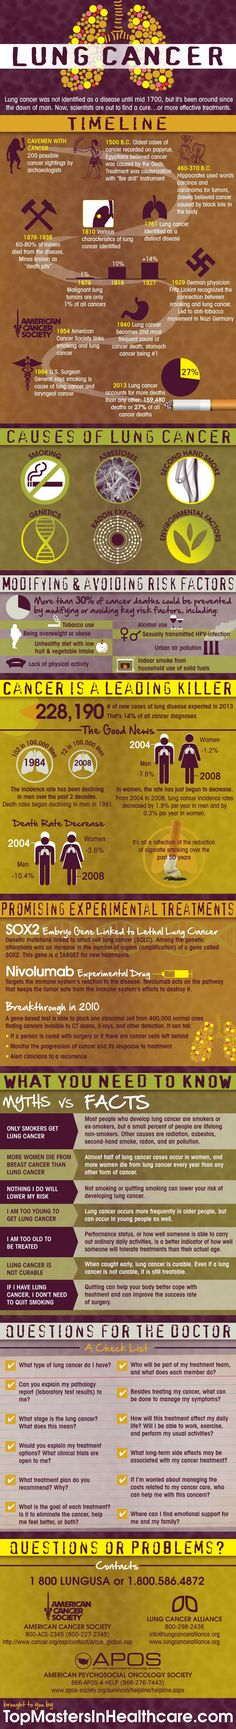 Lung Cancer[INFOGRAPHIC] #lung #cancer